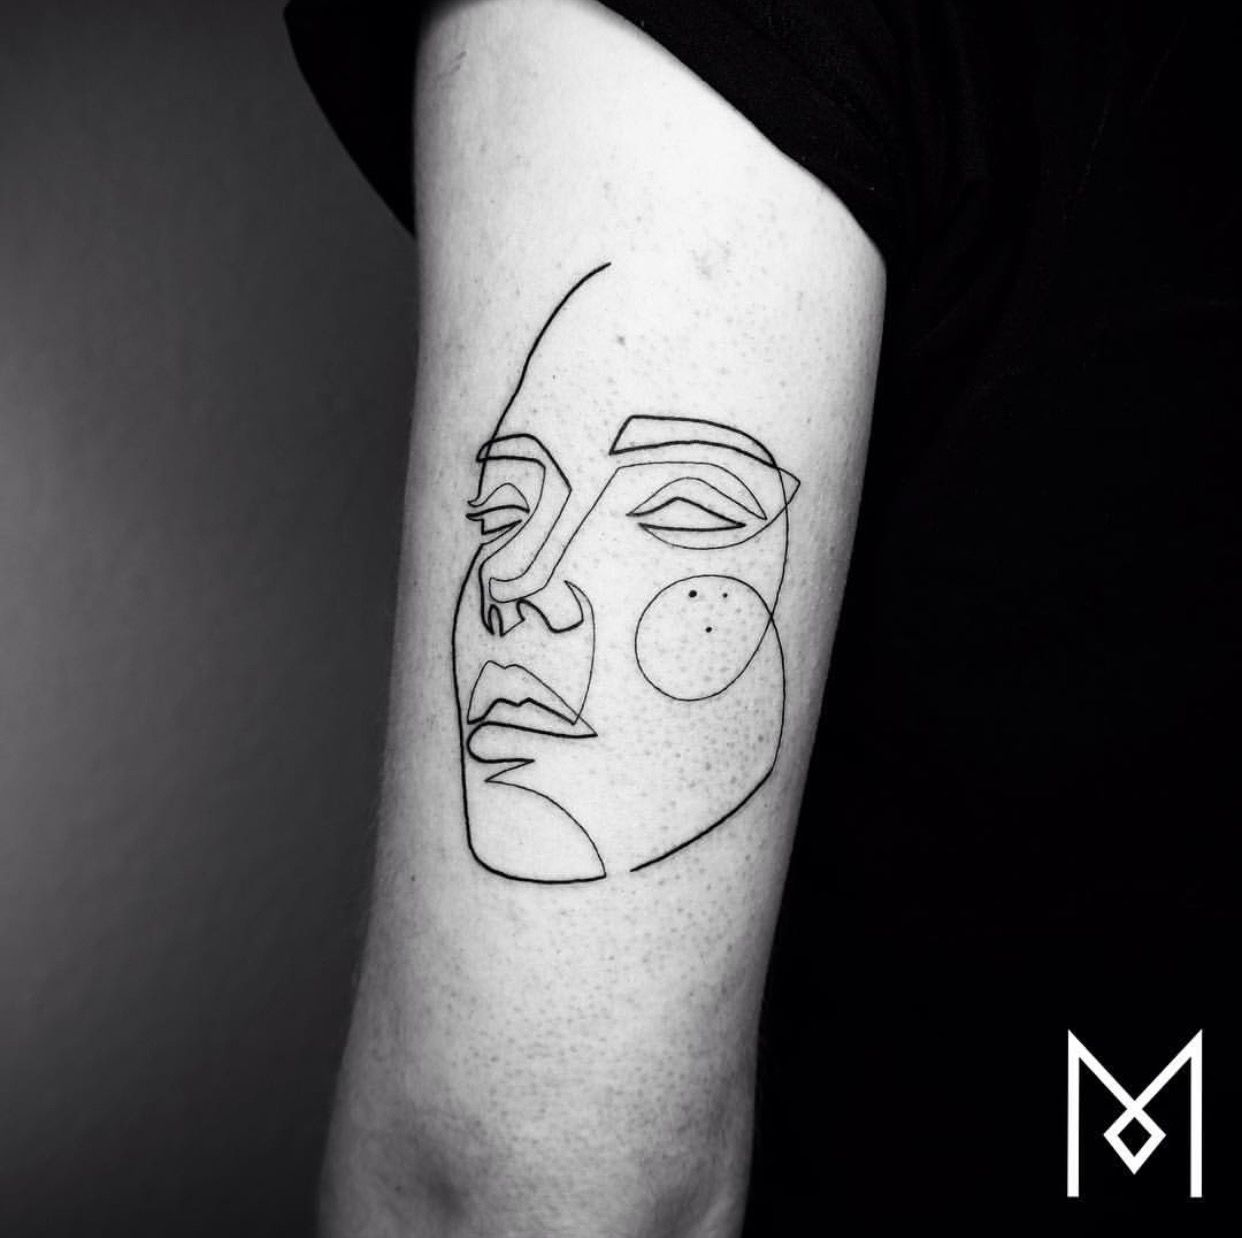 7906289cac07f Line tattoo one line face portrait | tattoo's | Line art tattoos ...